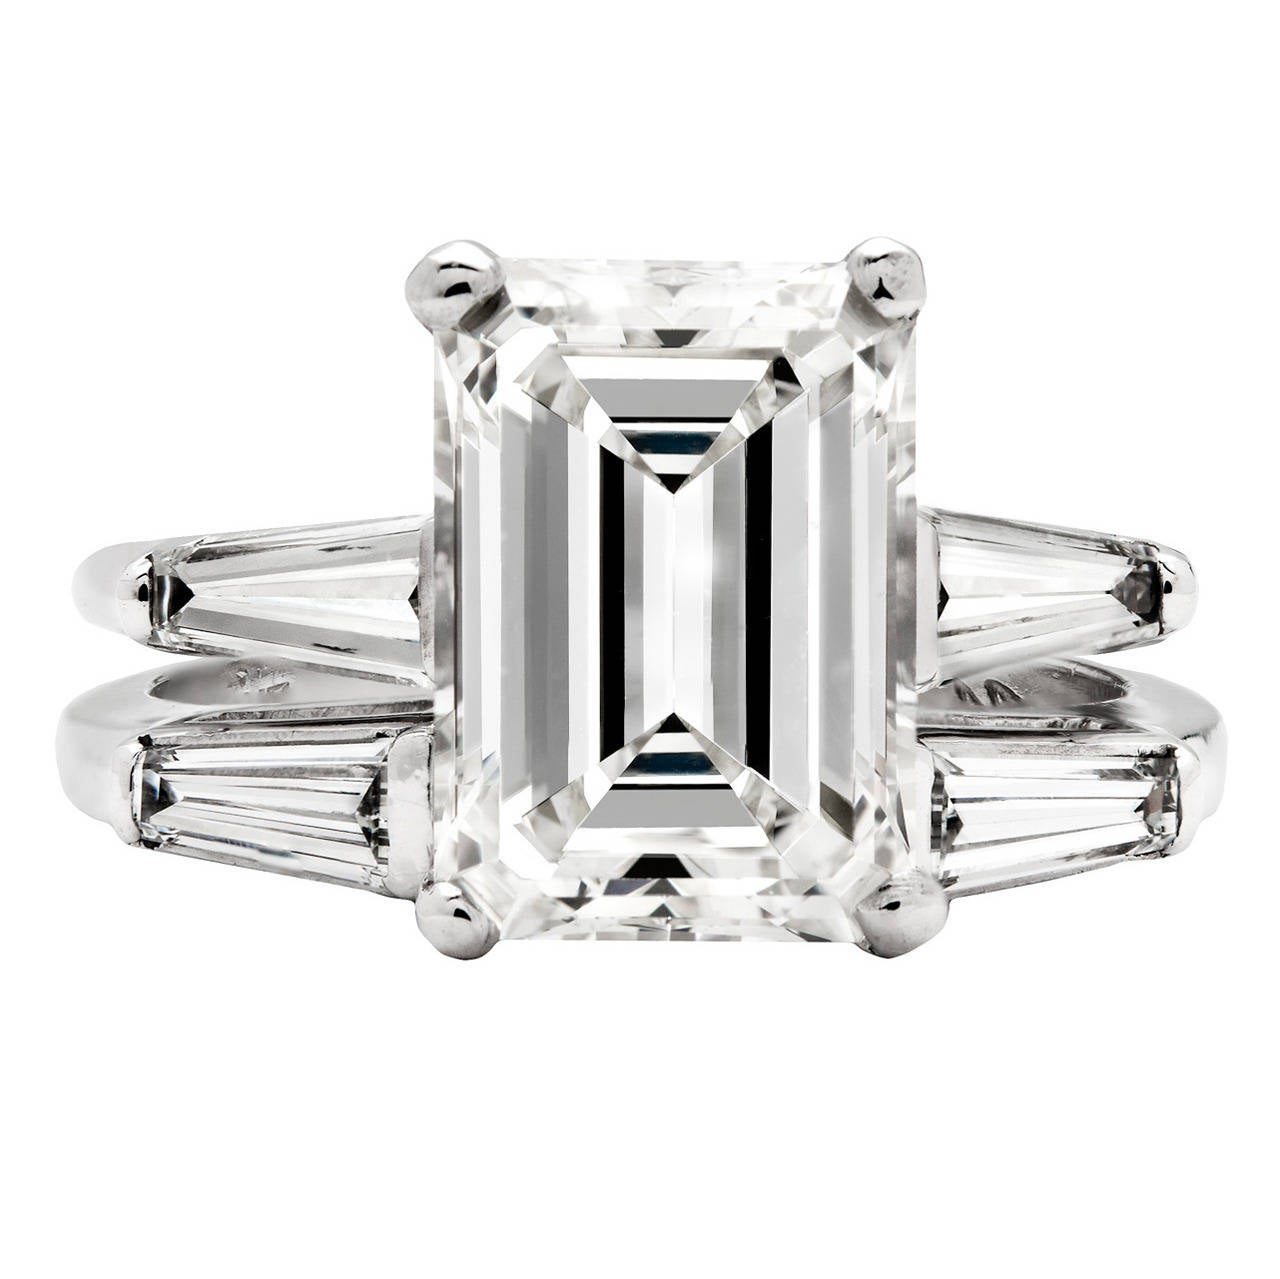 3 26 Carat GIA Emerald Cut Diamond Platinum Wedding Set at 1stdibs